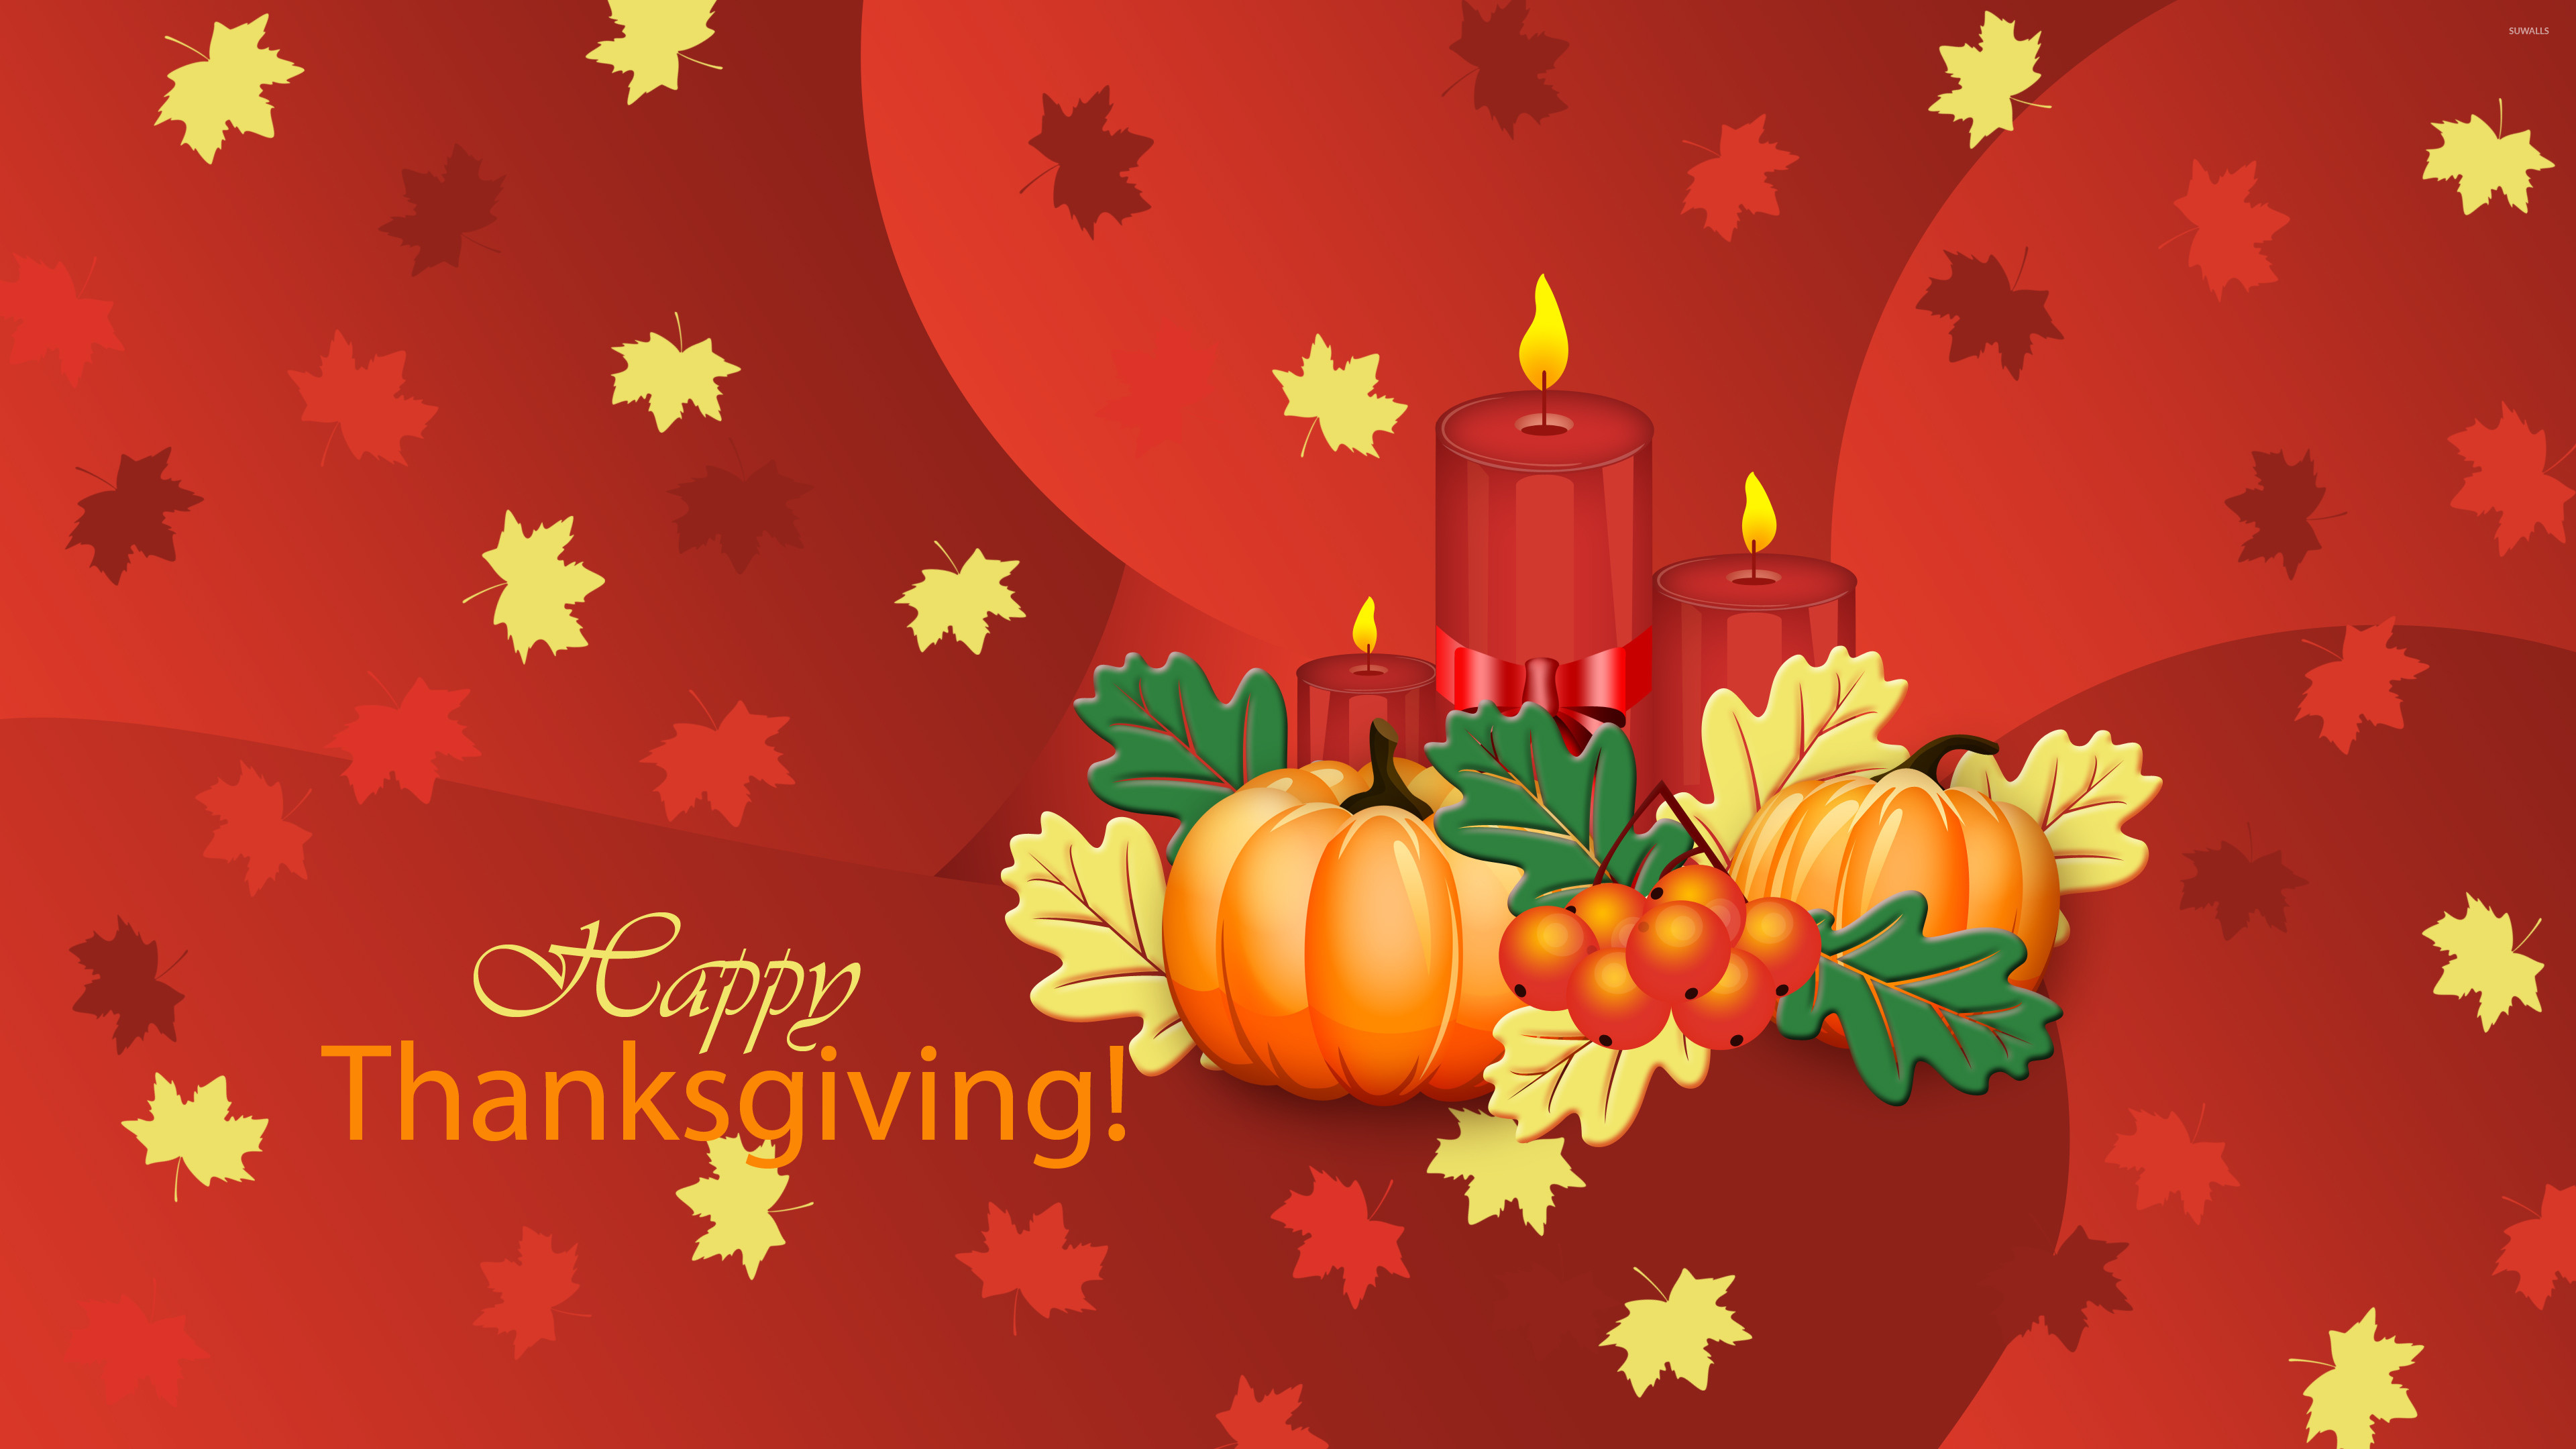 Res: 3840x2160, Pumpkins and candles on Thanksgiving wallpaper  jpg